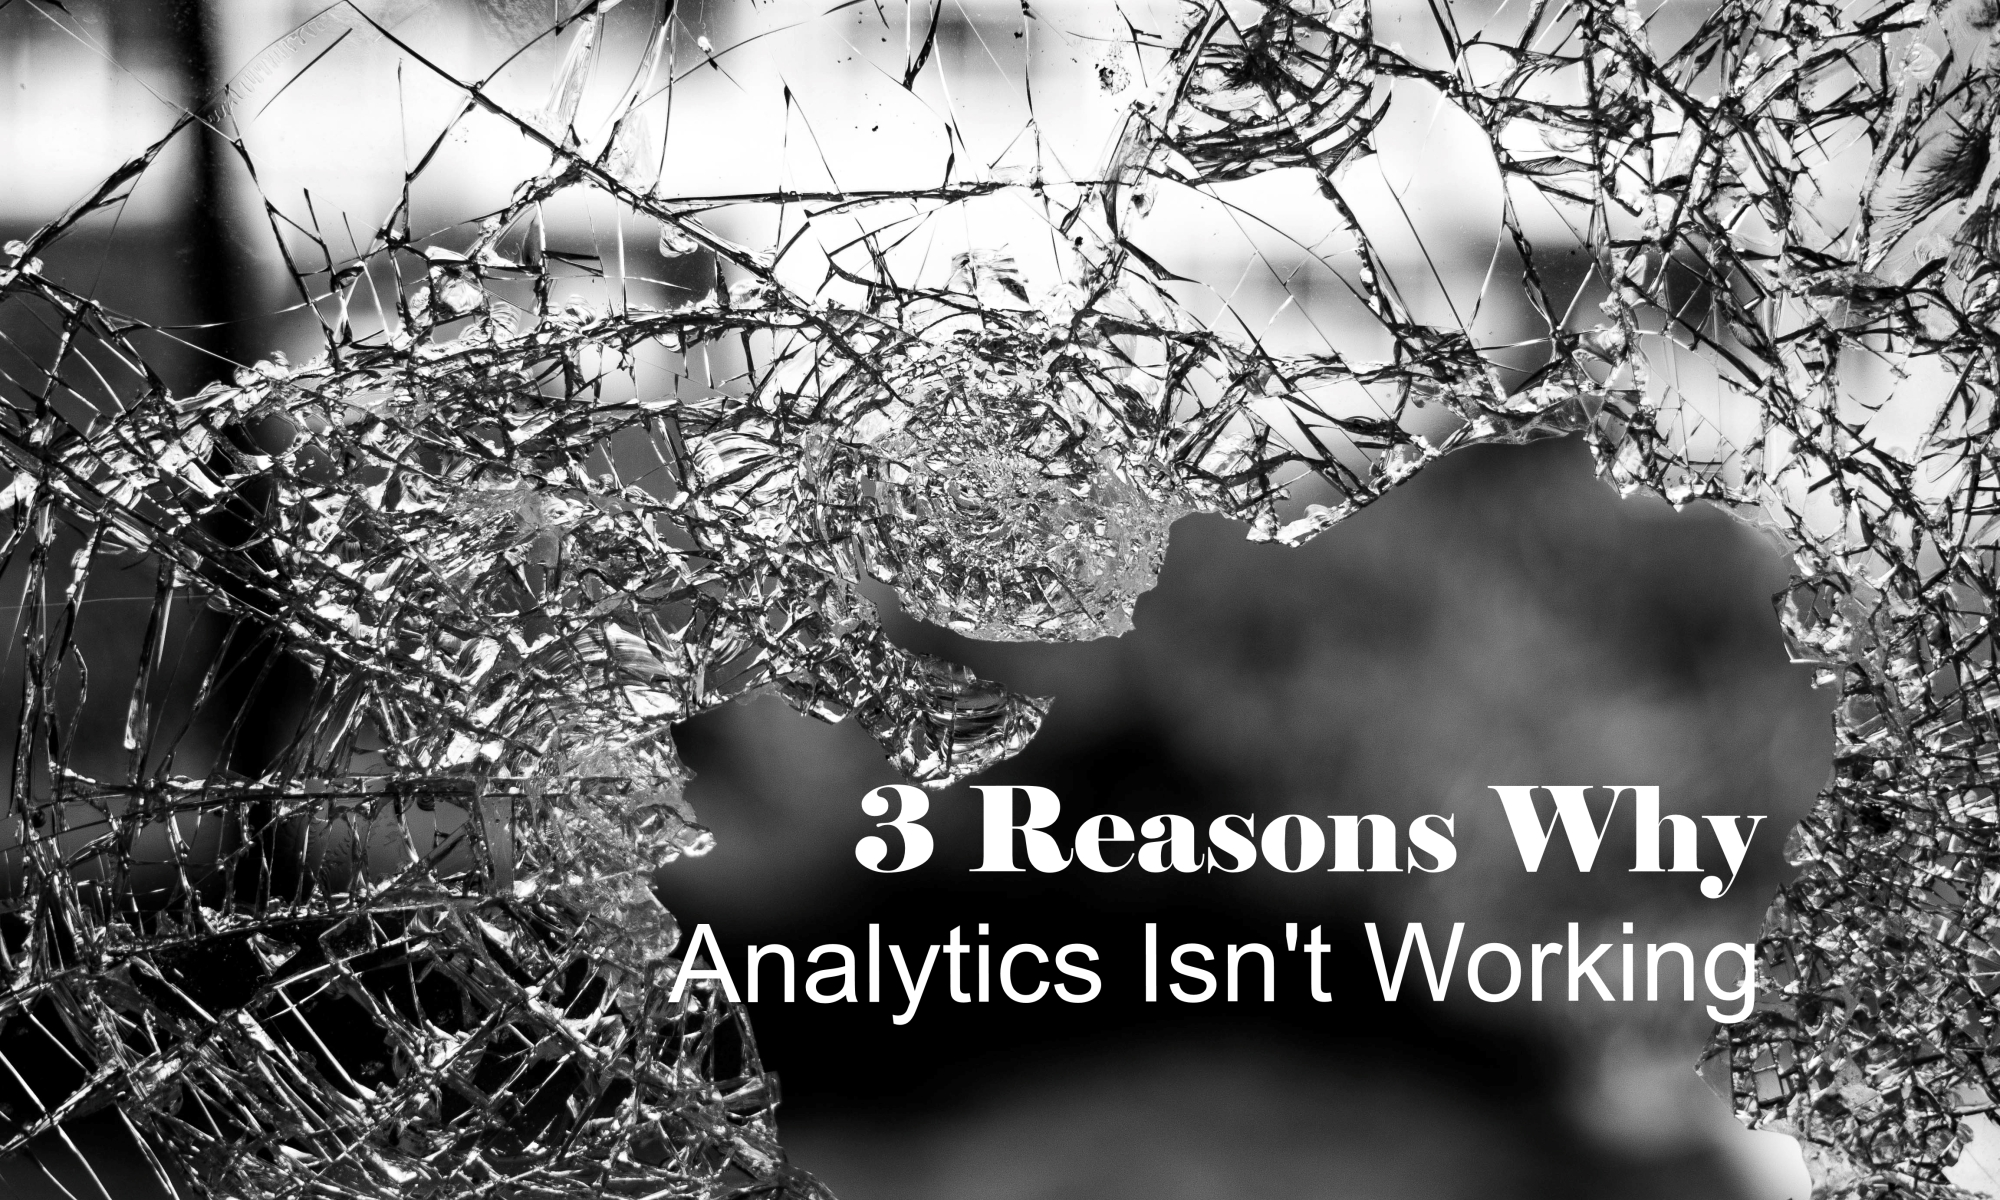 3 Reasons Why Analytics isn't Working by TheRiseApproach